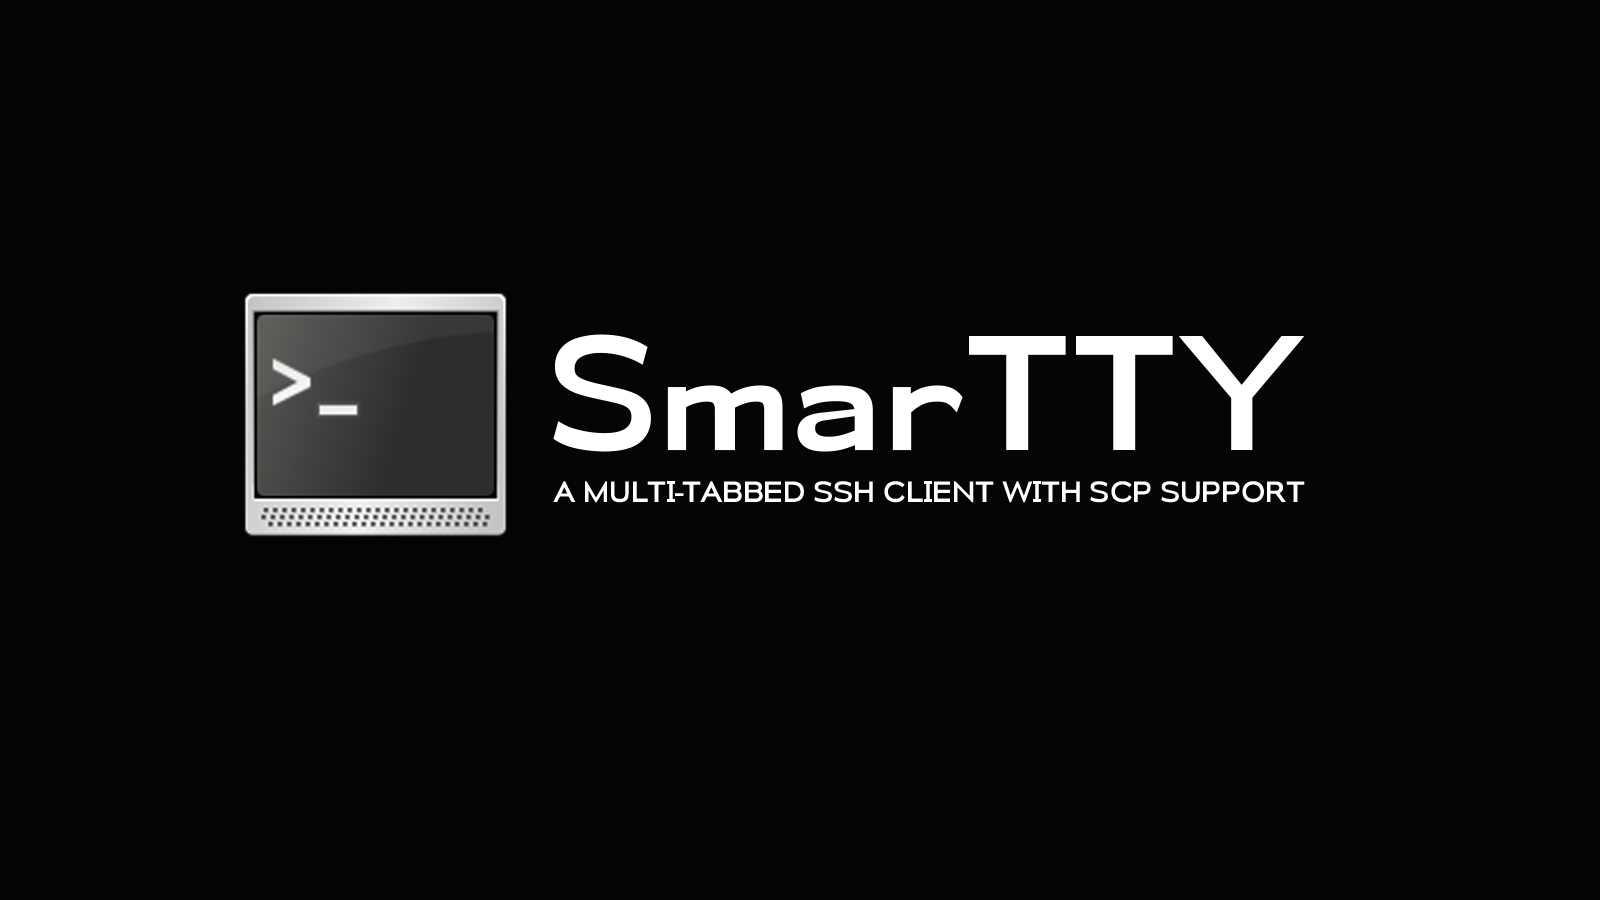 SmarTTY - A Multi-tabbed SSH Client with SCP Support